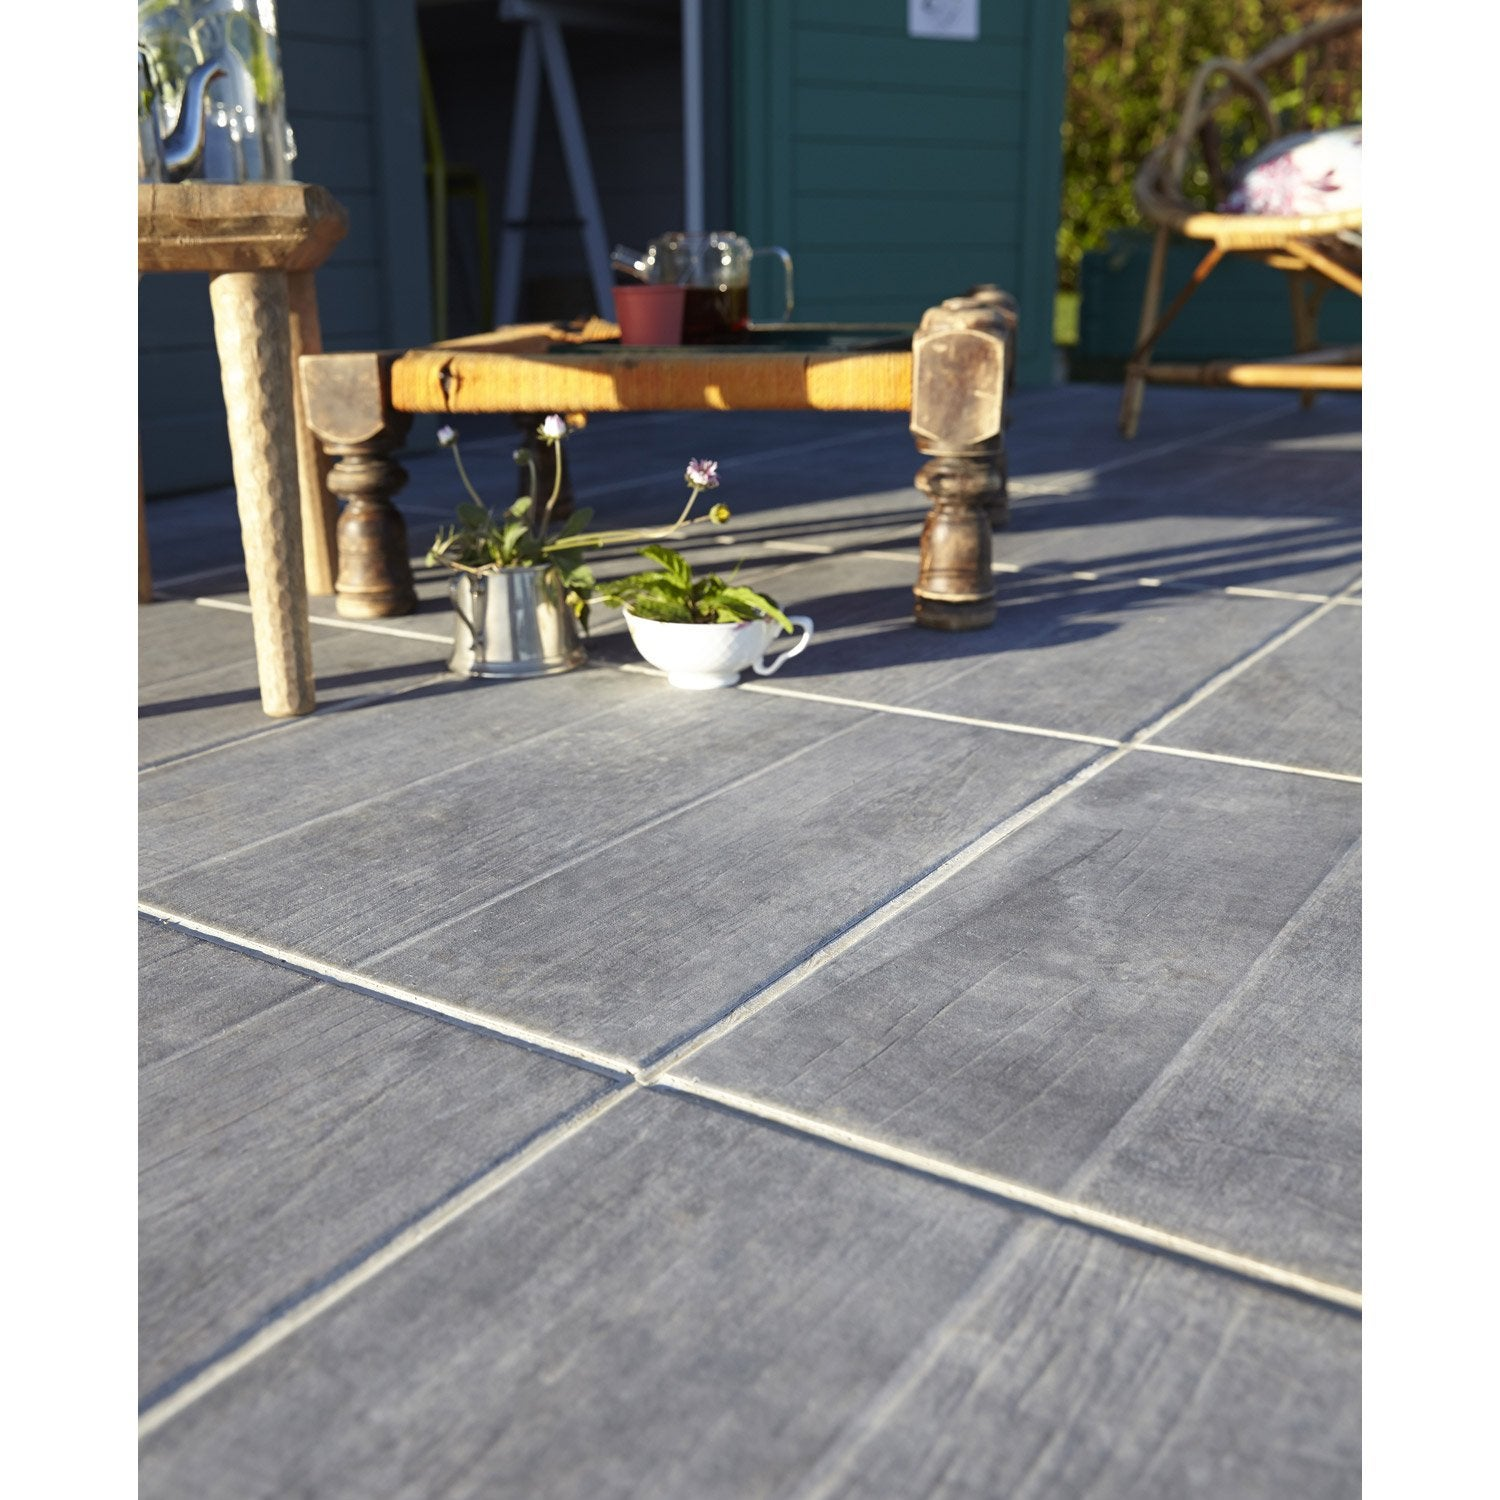 Carrelage sol anthracite effet bois river x cm for Carrelage 50x50 gris anthracite